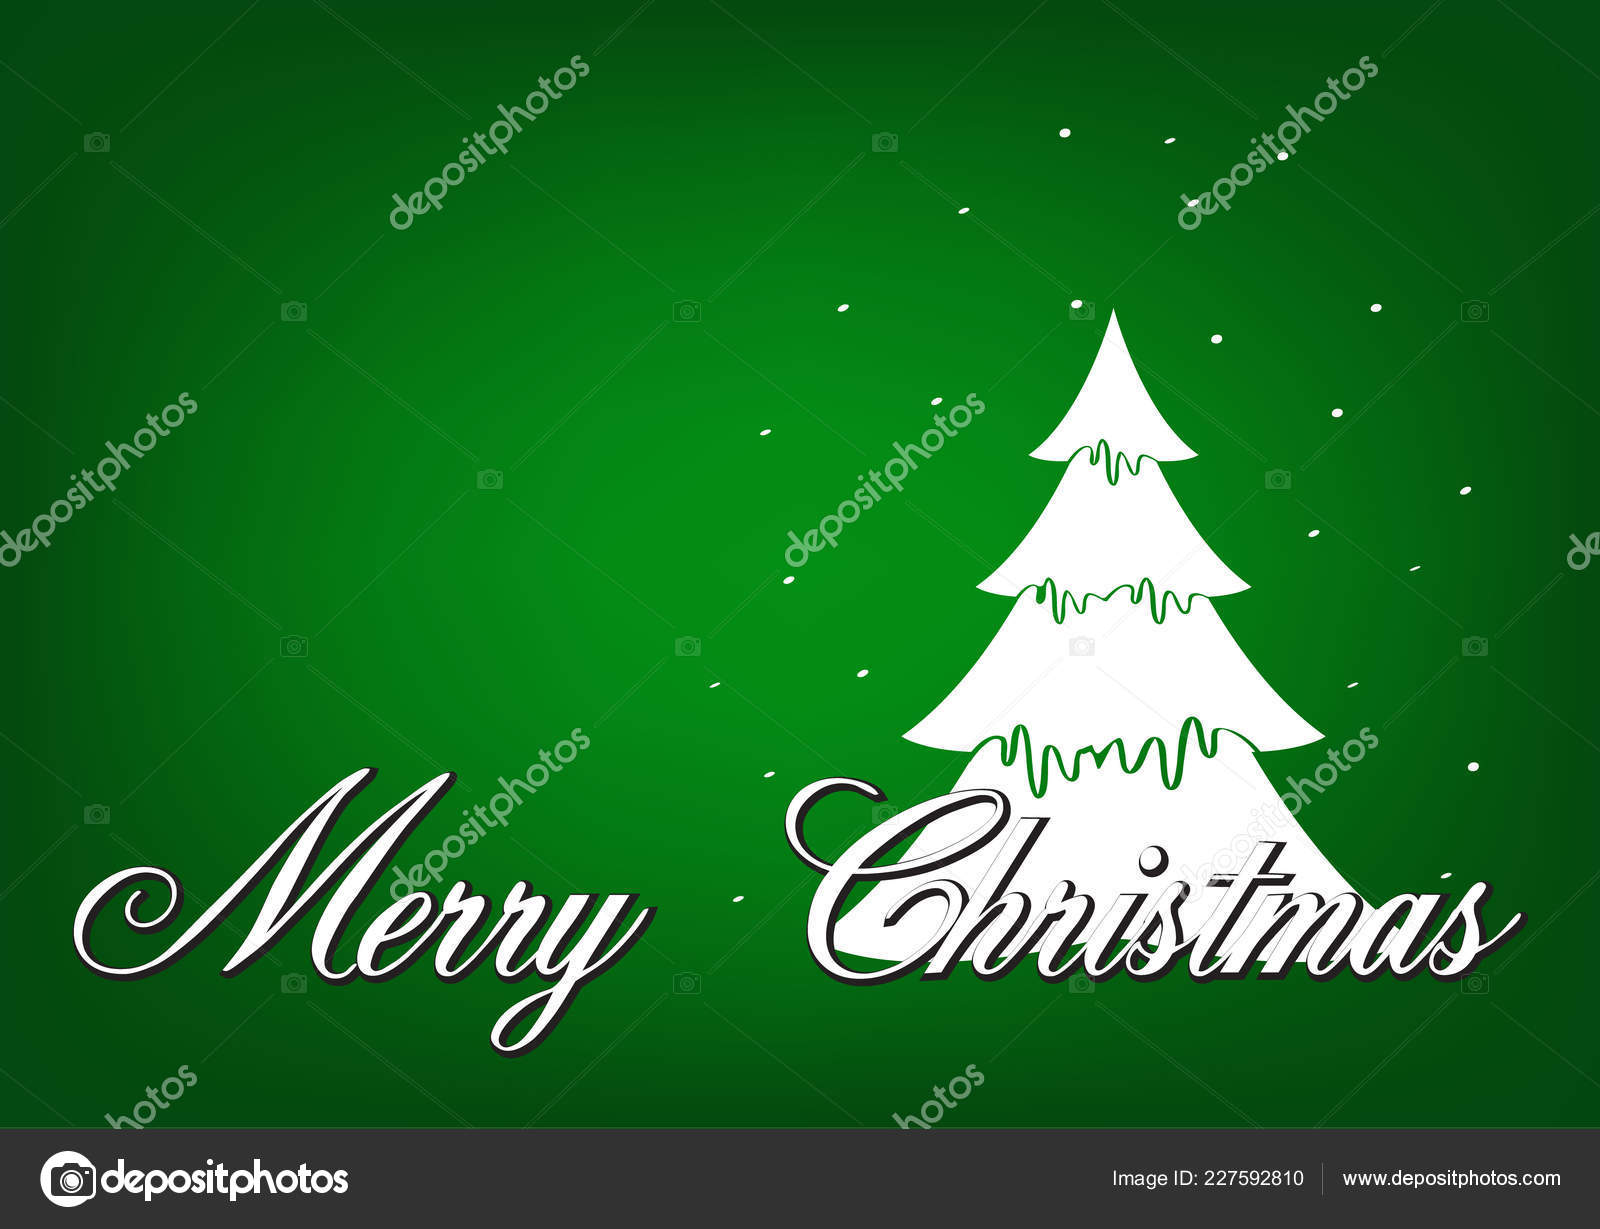 Merry Christmas Happy New Year Christmas Cards Simple Design — Stock ...